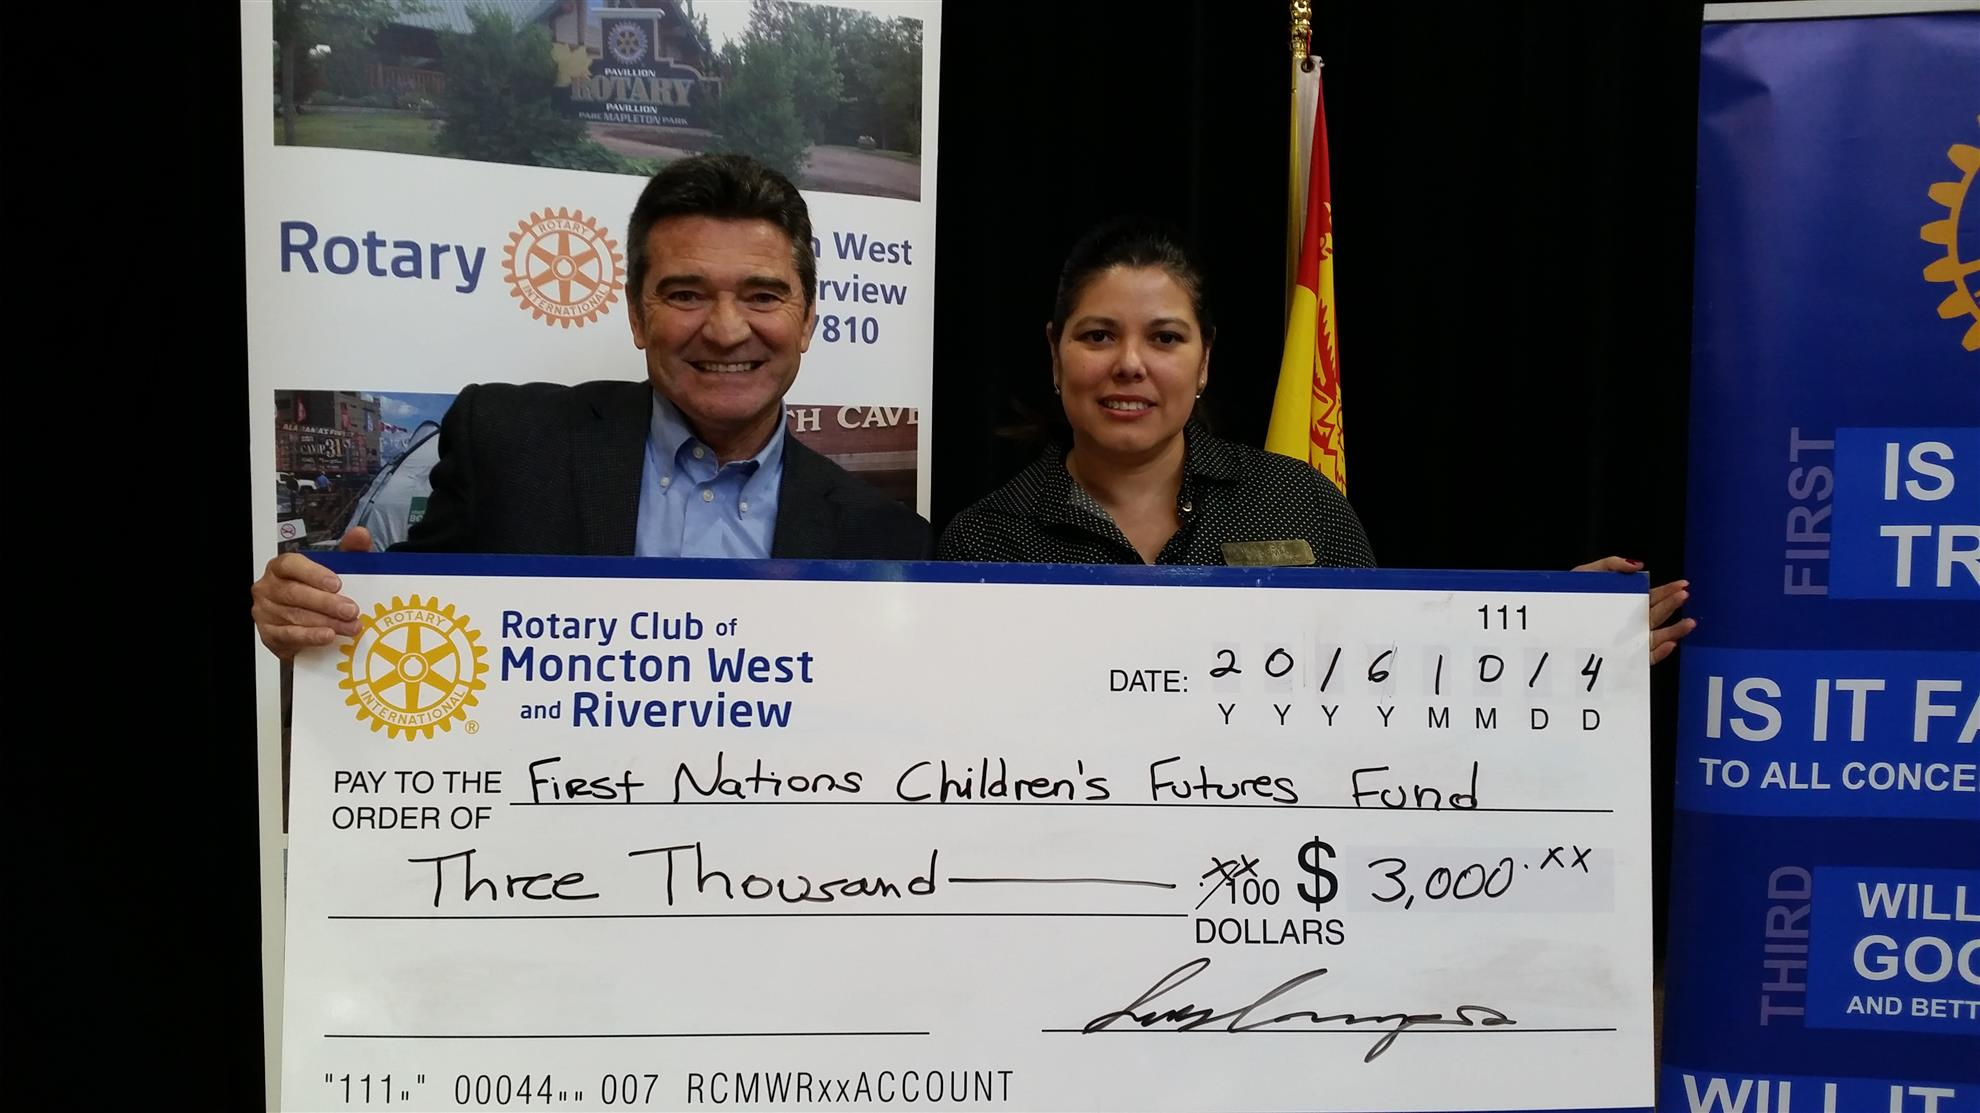 First Nations Children's Future Fund support